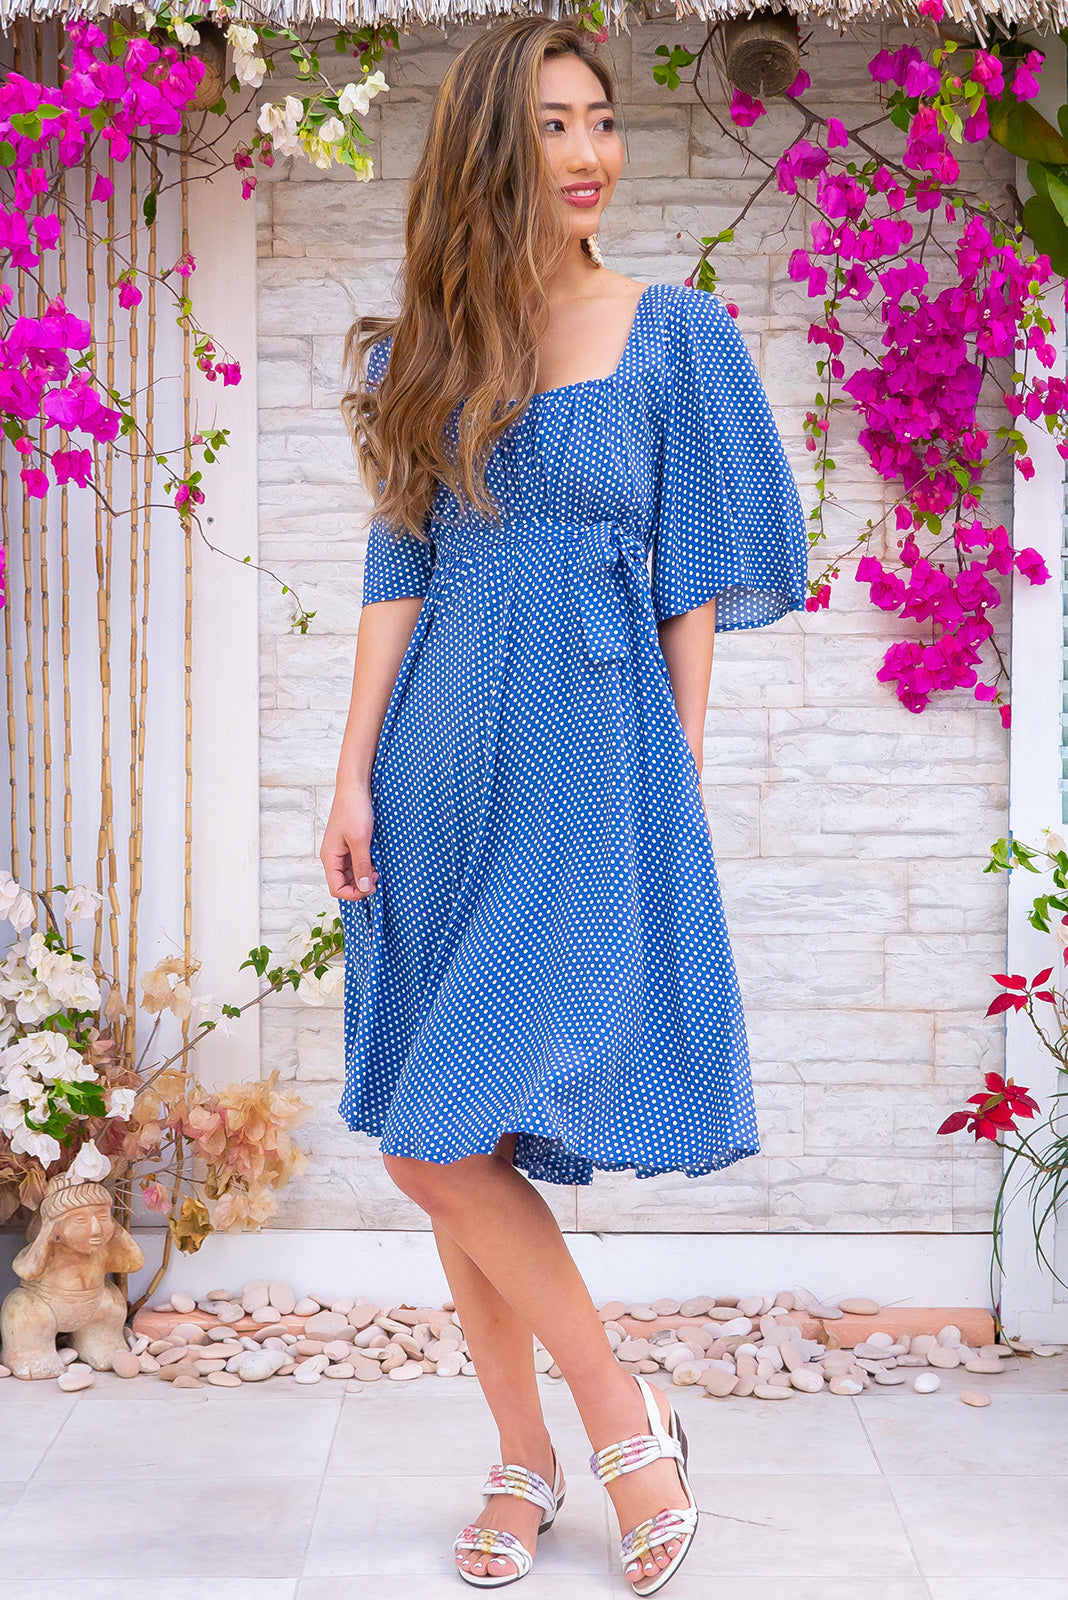 The Canterbury Retro Rita Dress is a vintage inspired polka dot blue summer frock made from 100% rayon, lightweight and breathable in a milkmaid cut neckline, includes side pockets and flutter sleeves.